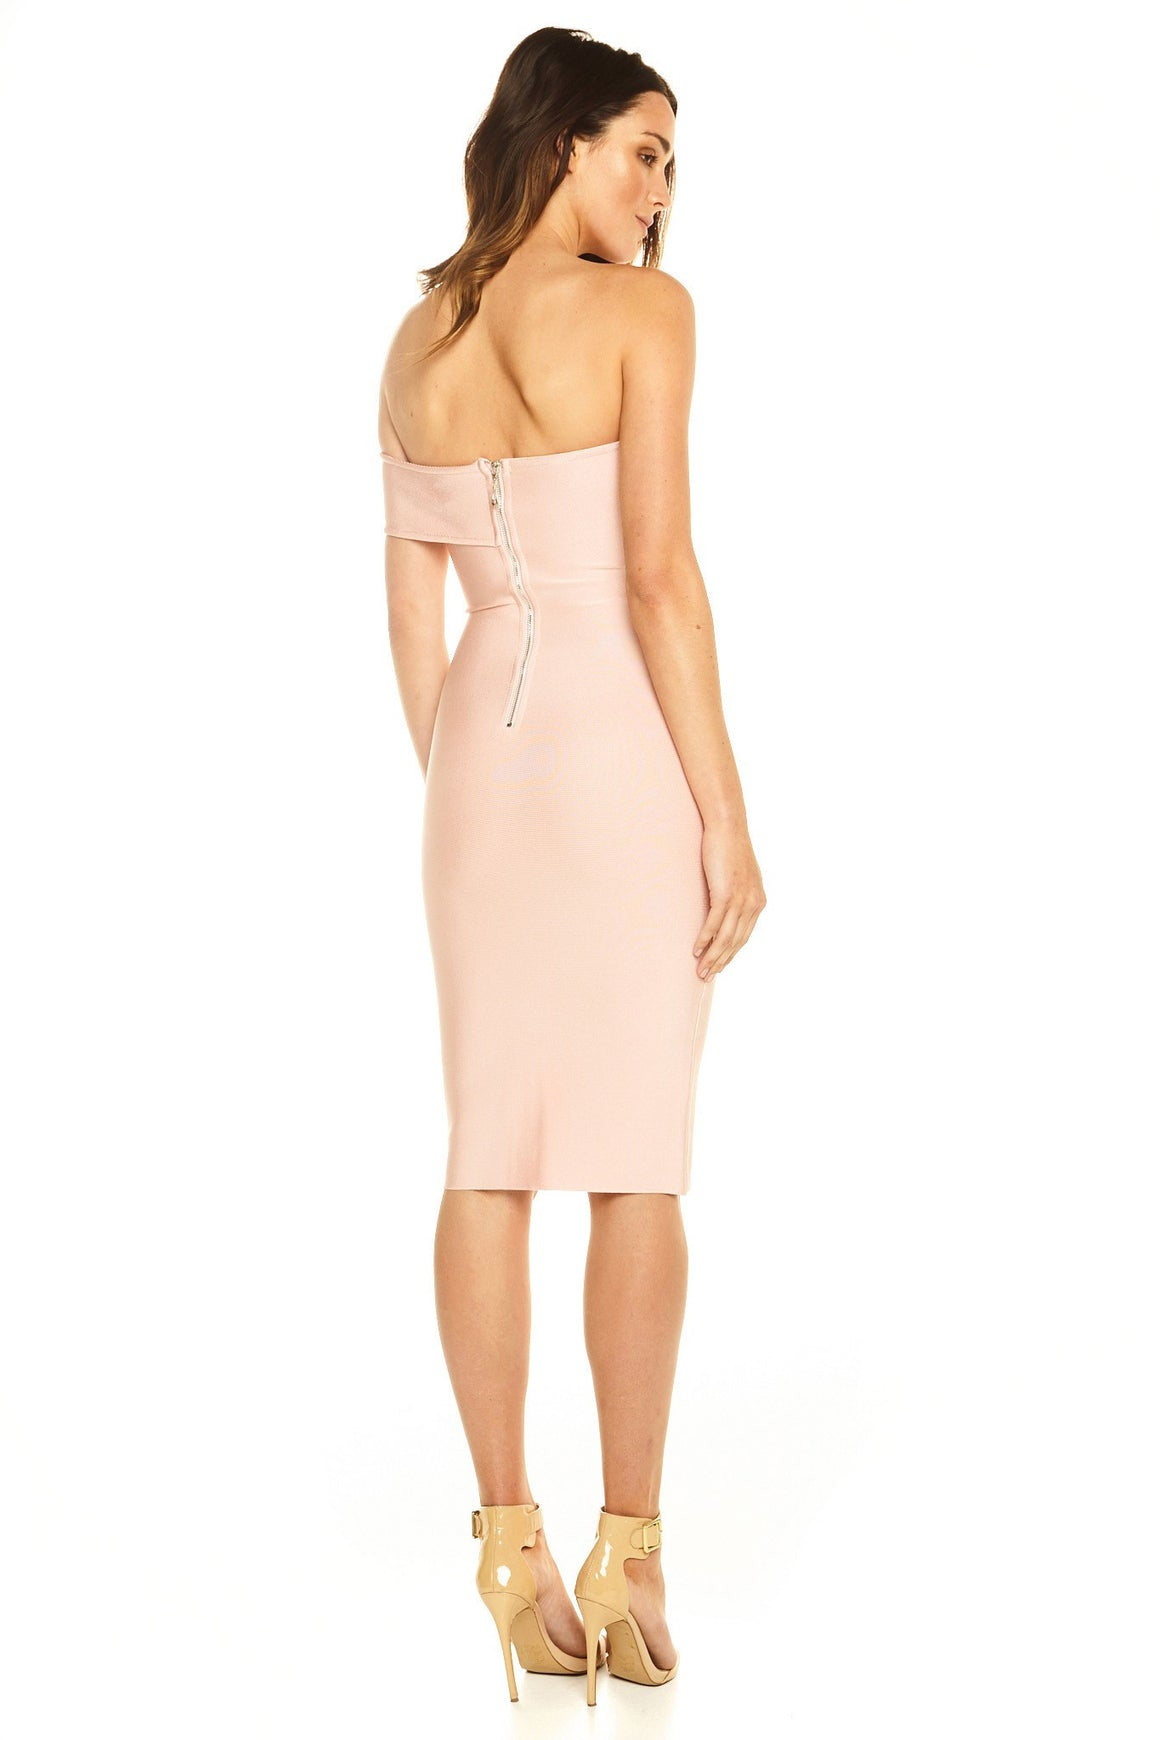 Tahne Off-Shoulder Bandage Dress - Blush